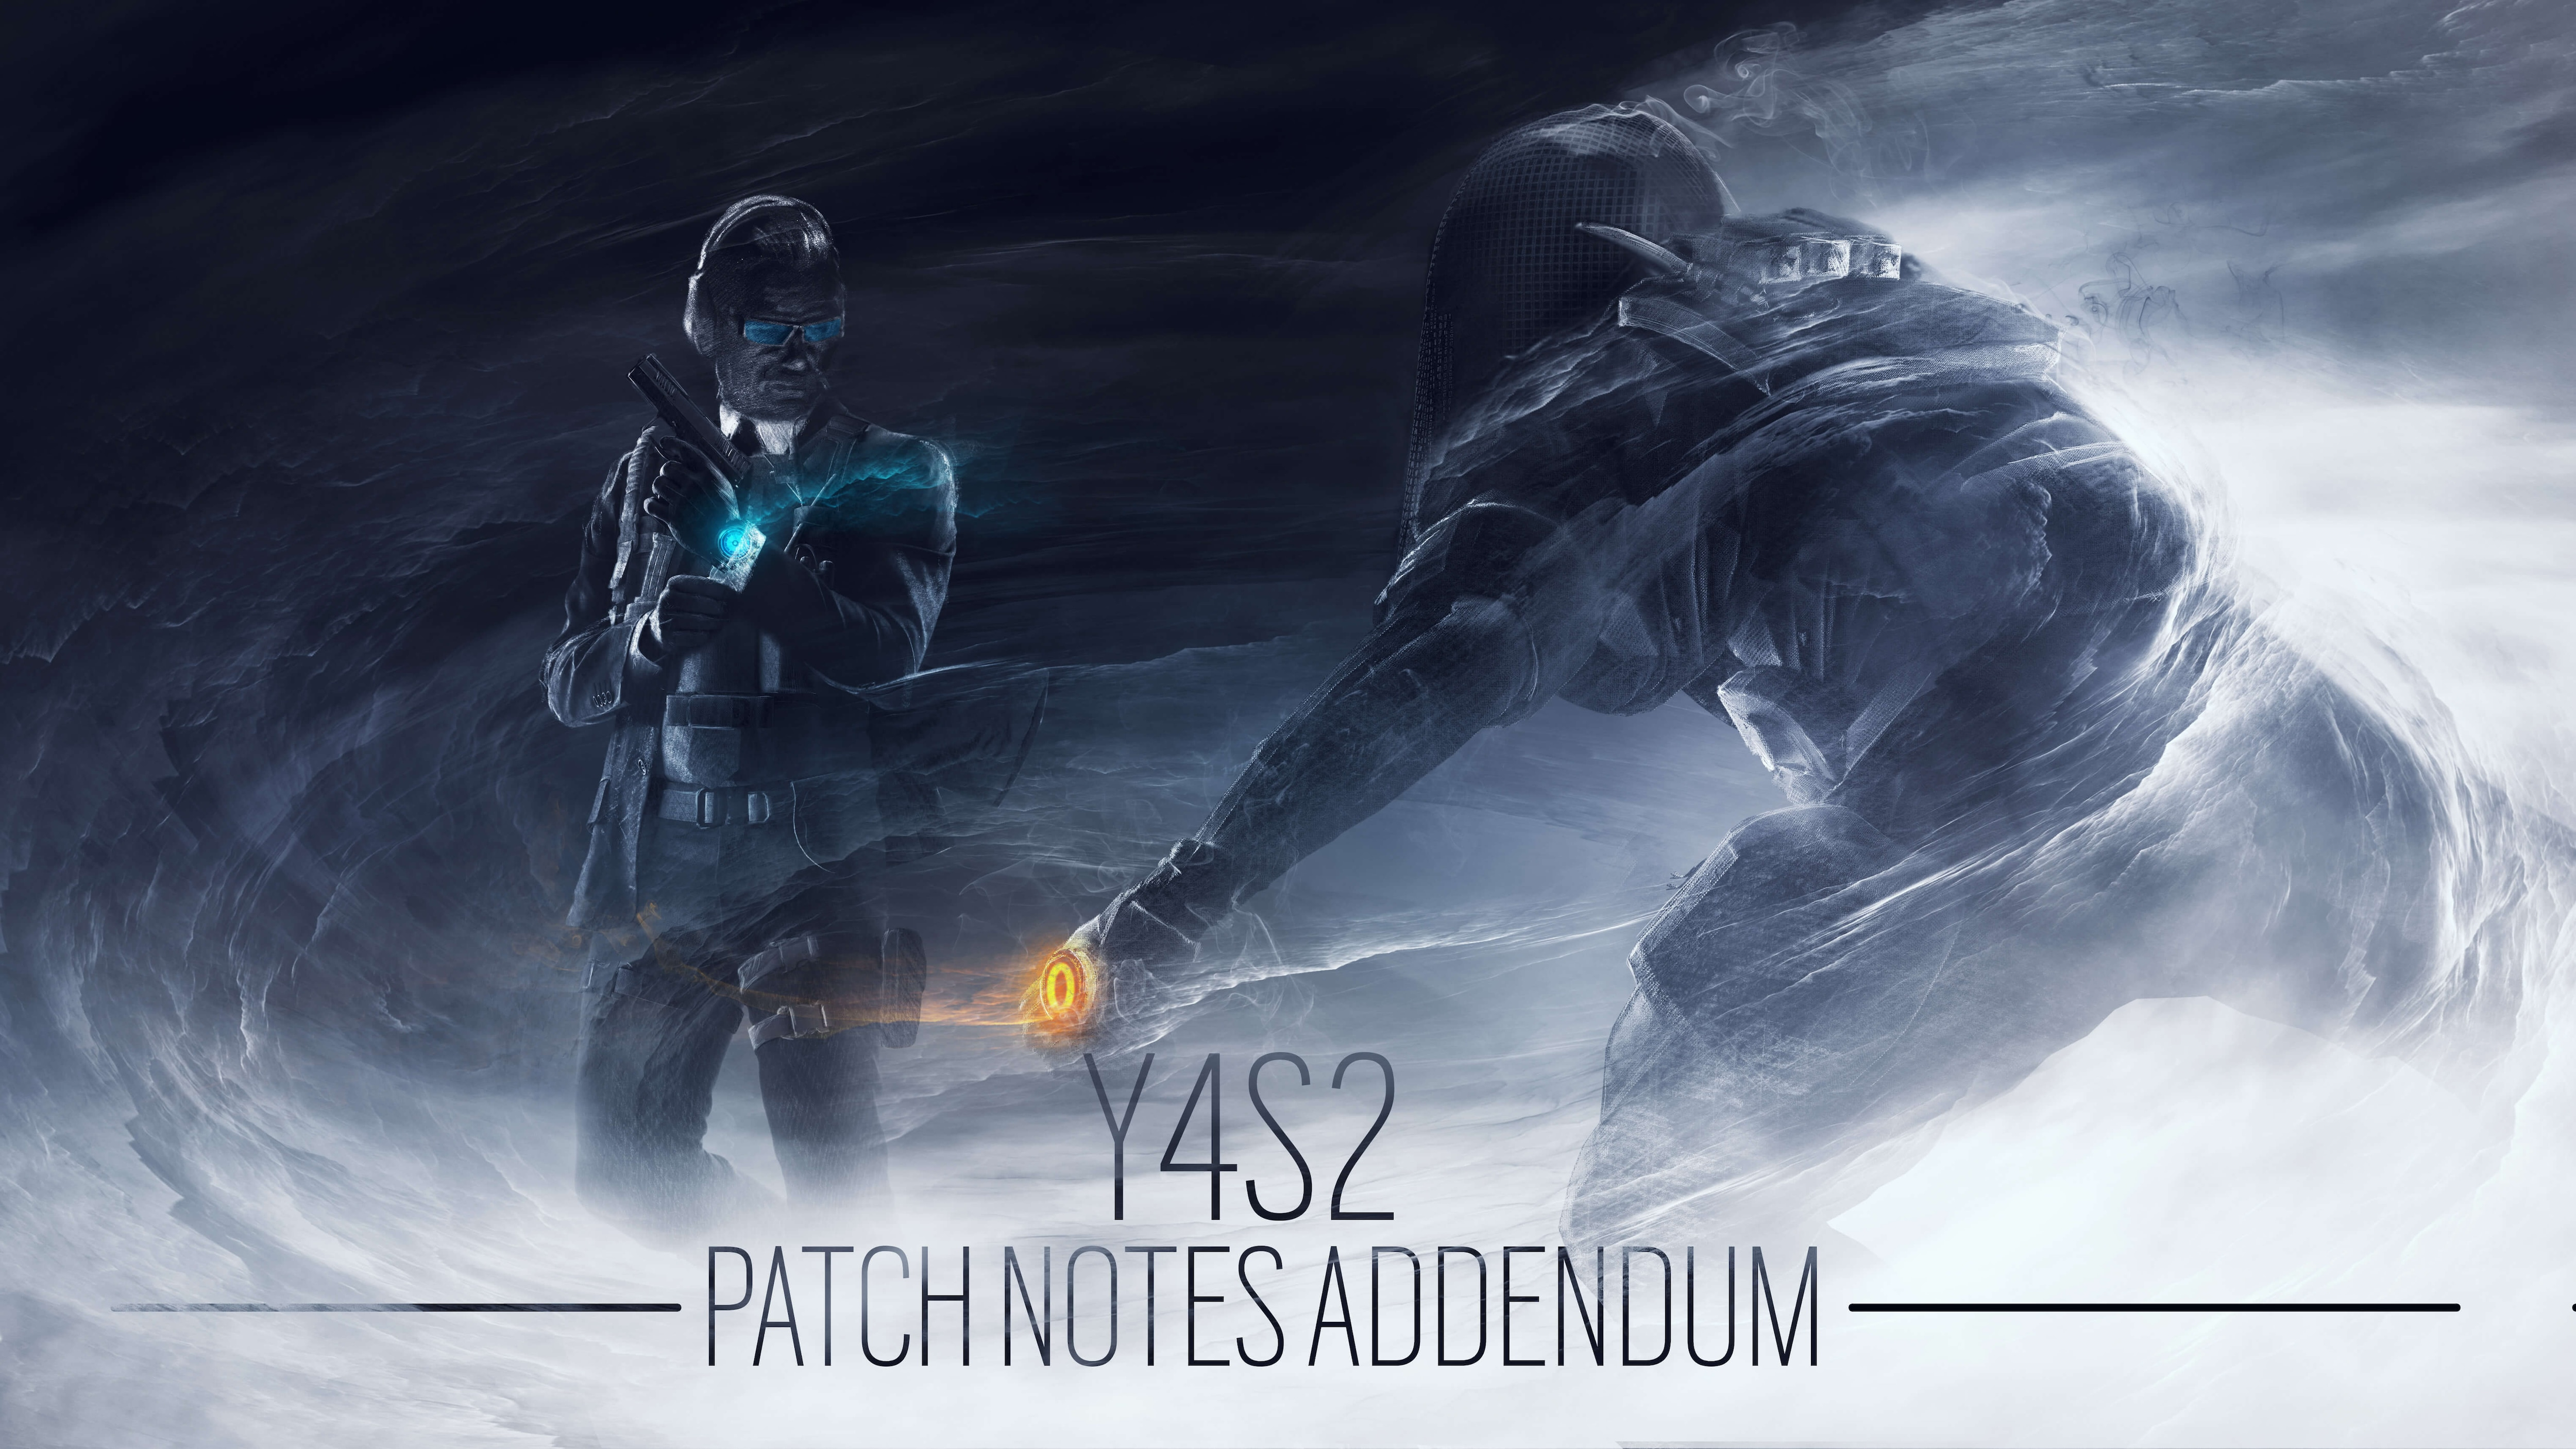 [2019-06-10] Y4S2 patchnotes add